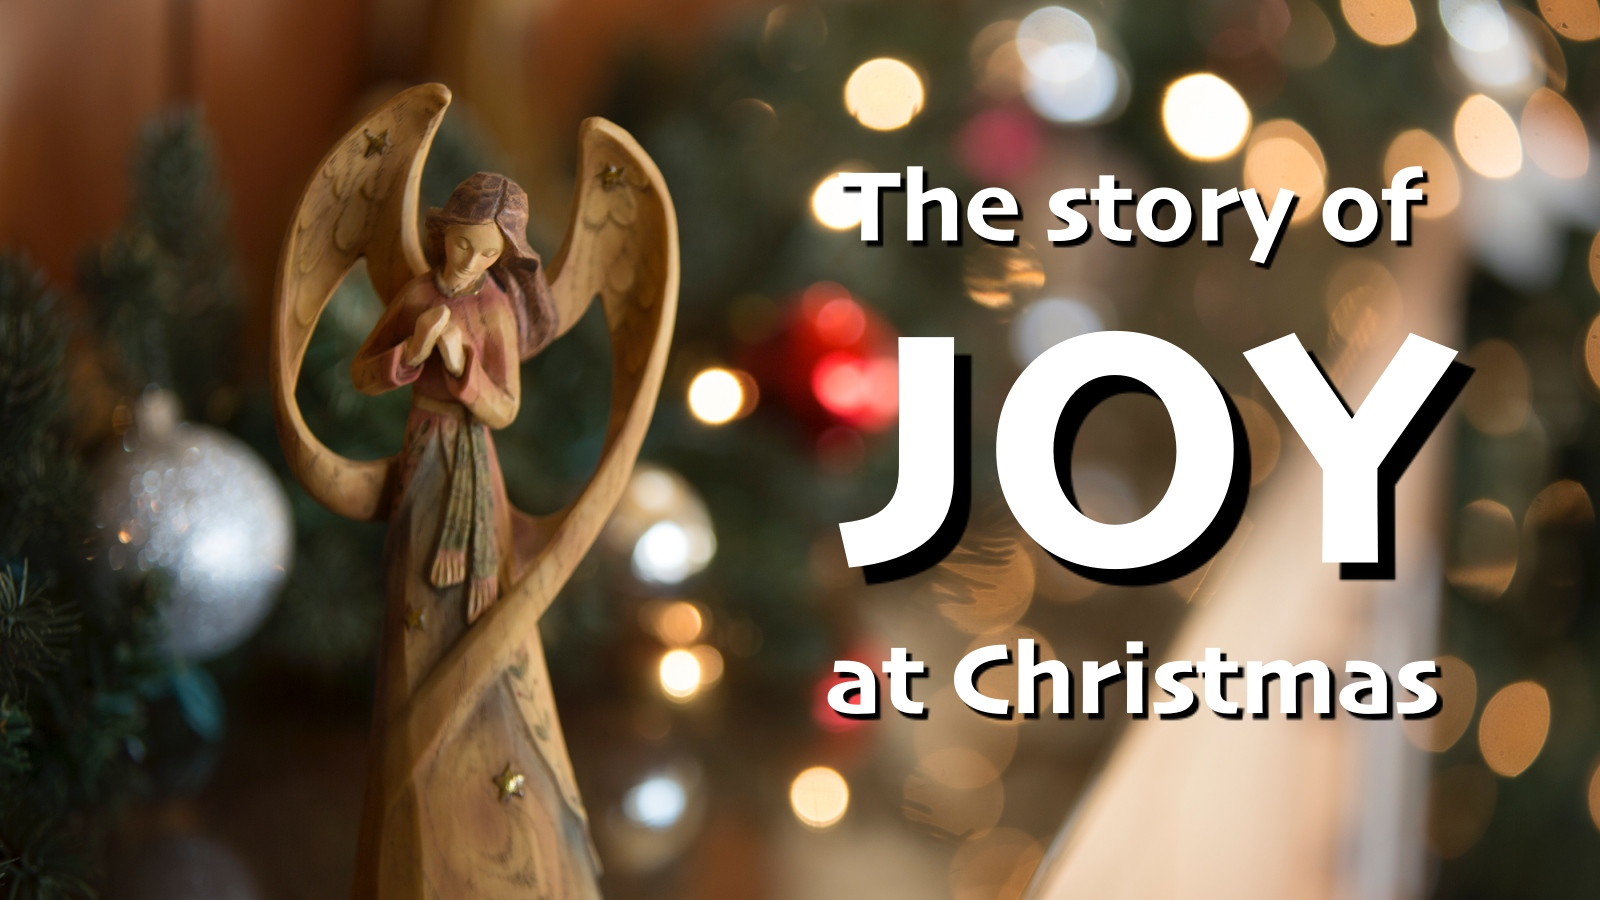 The Story of Joy at Christmas